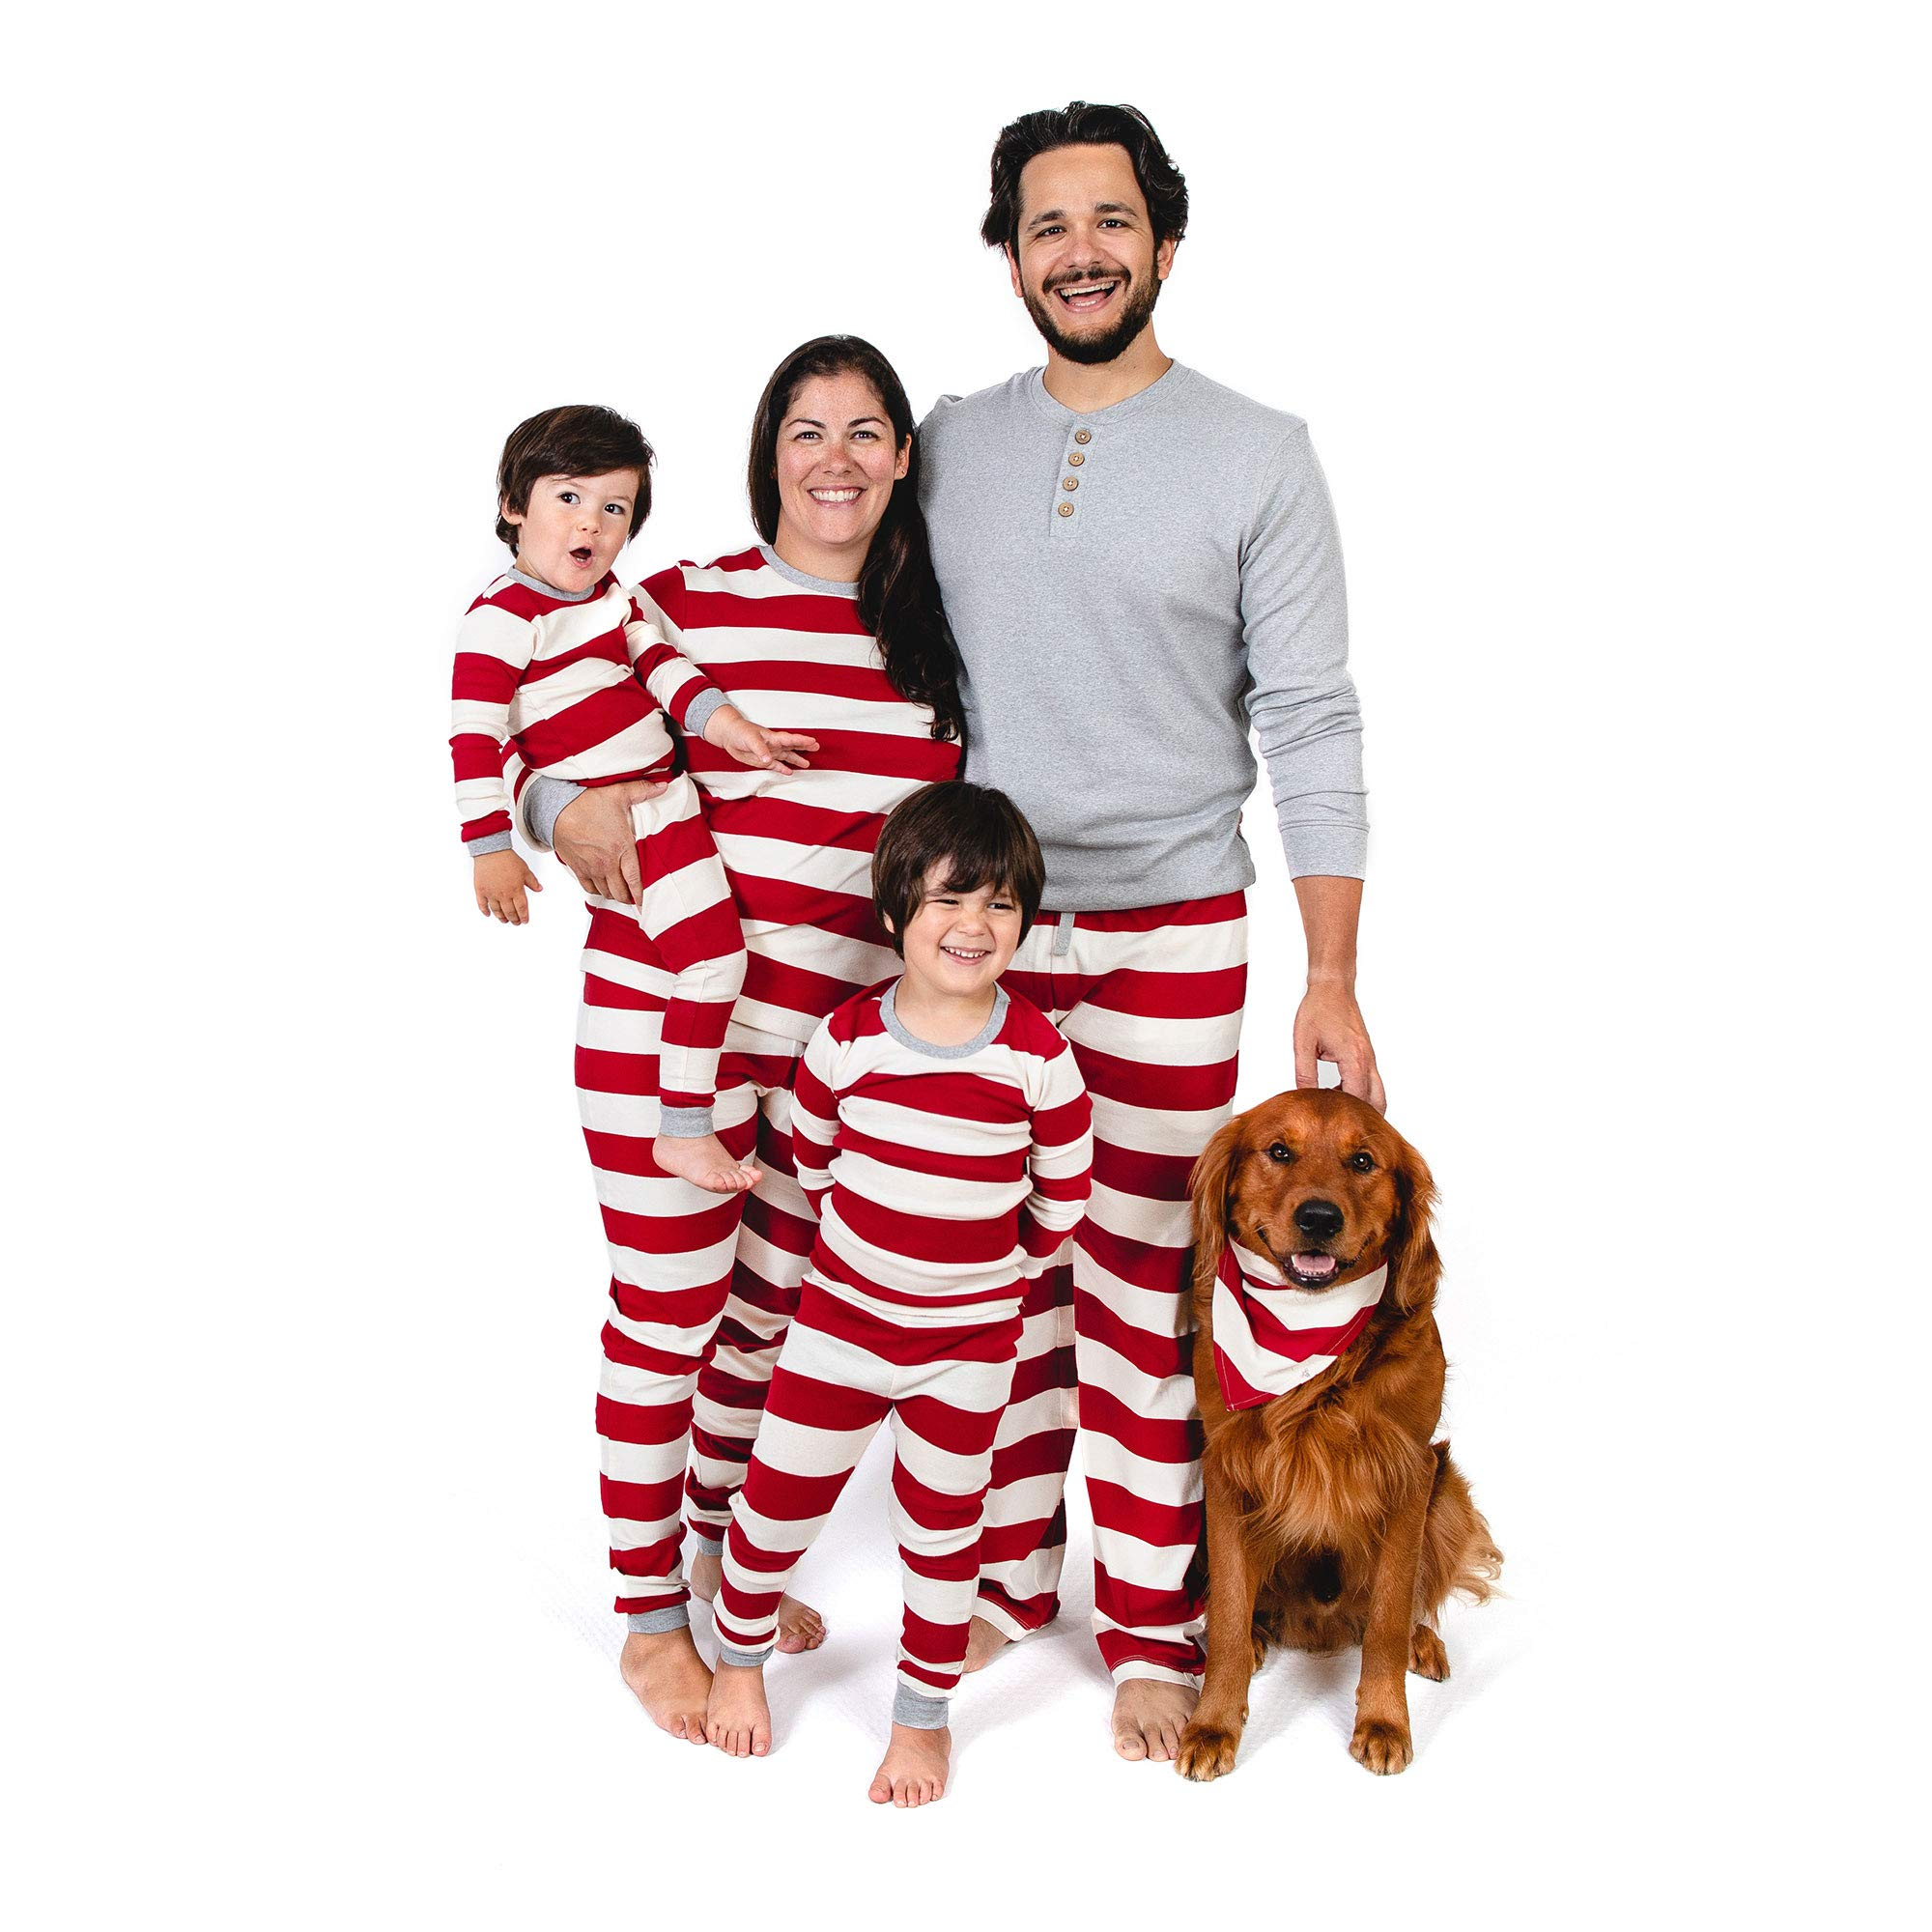 Burt's Bees Baby Family Jammies, Holiday Matching Pajamas, 100% Organic Cotton PJs, Red Rugby Stripe, Womens Large